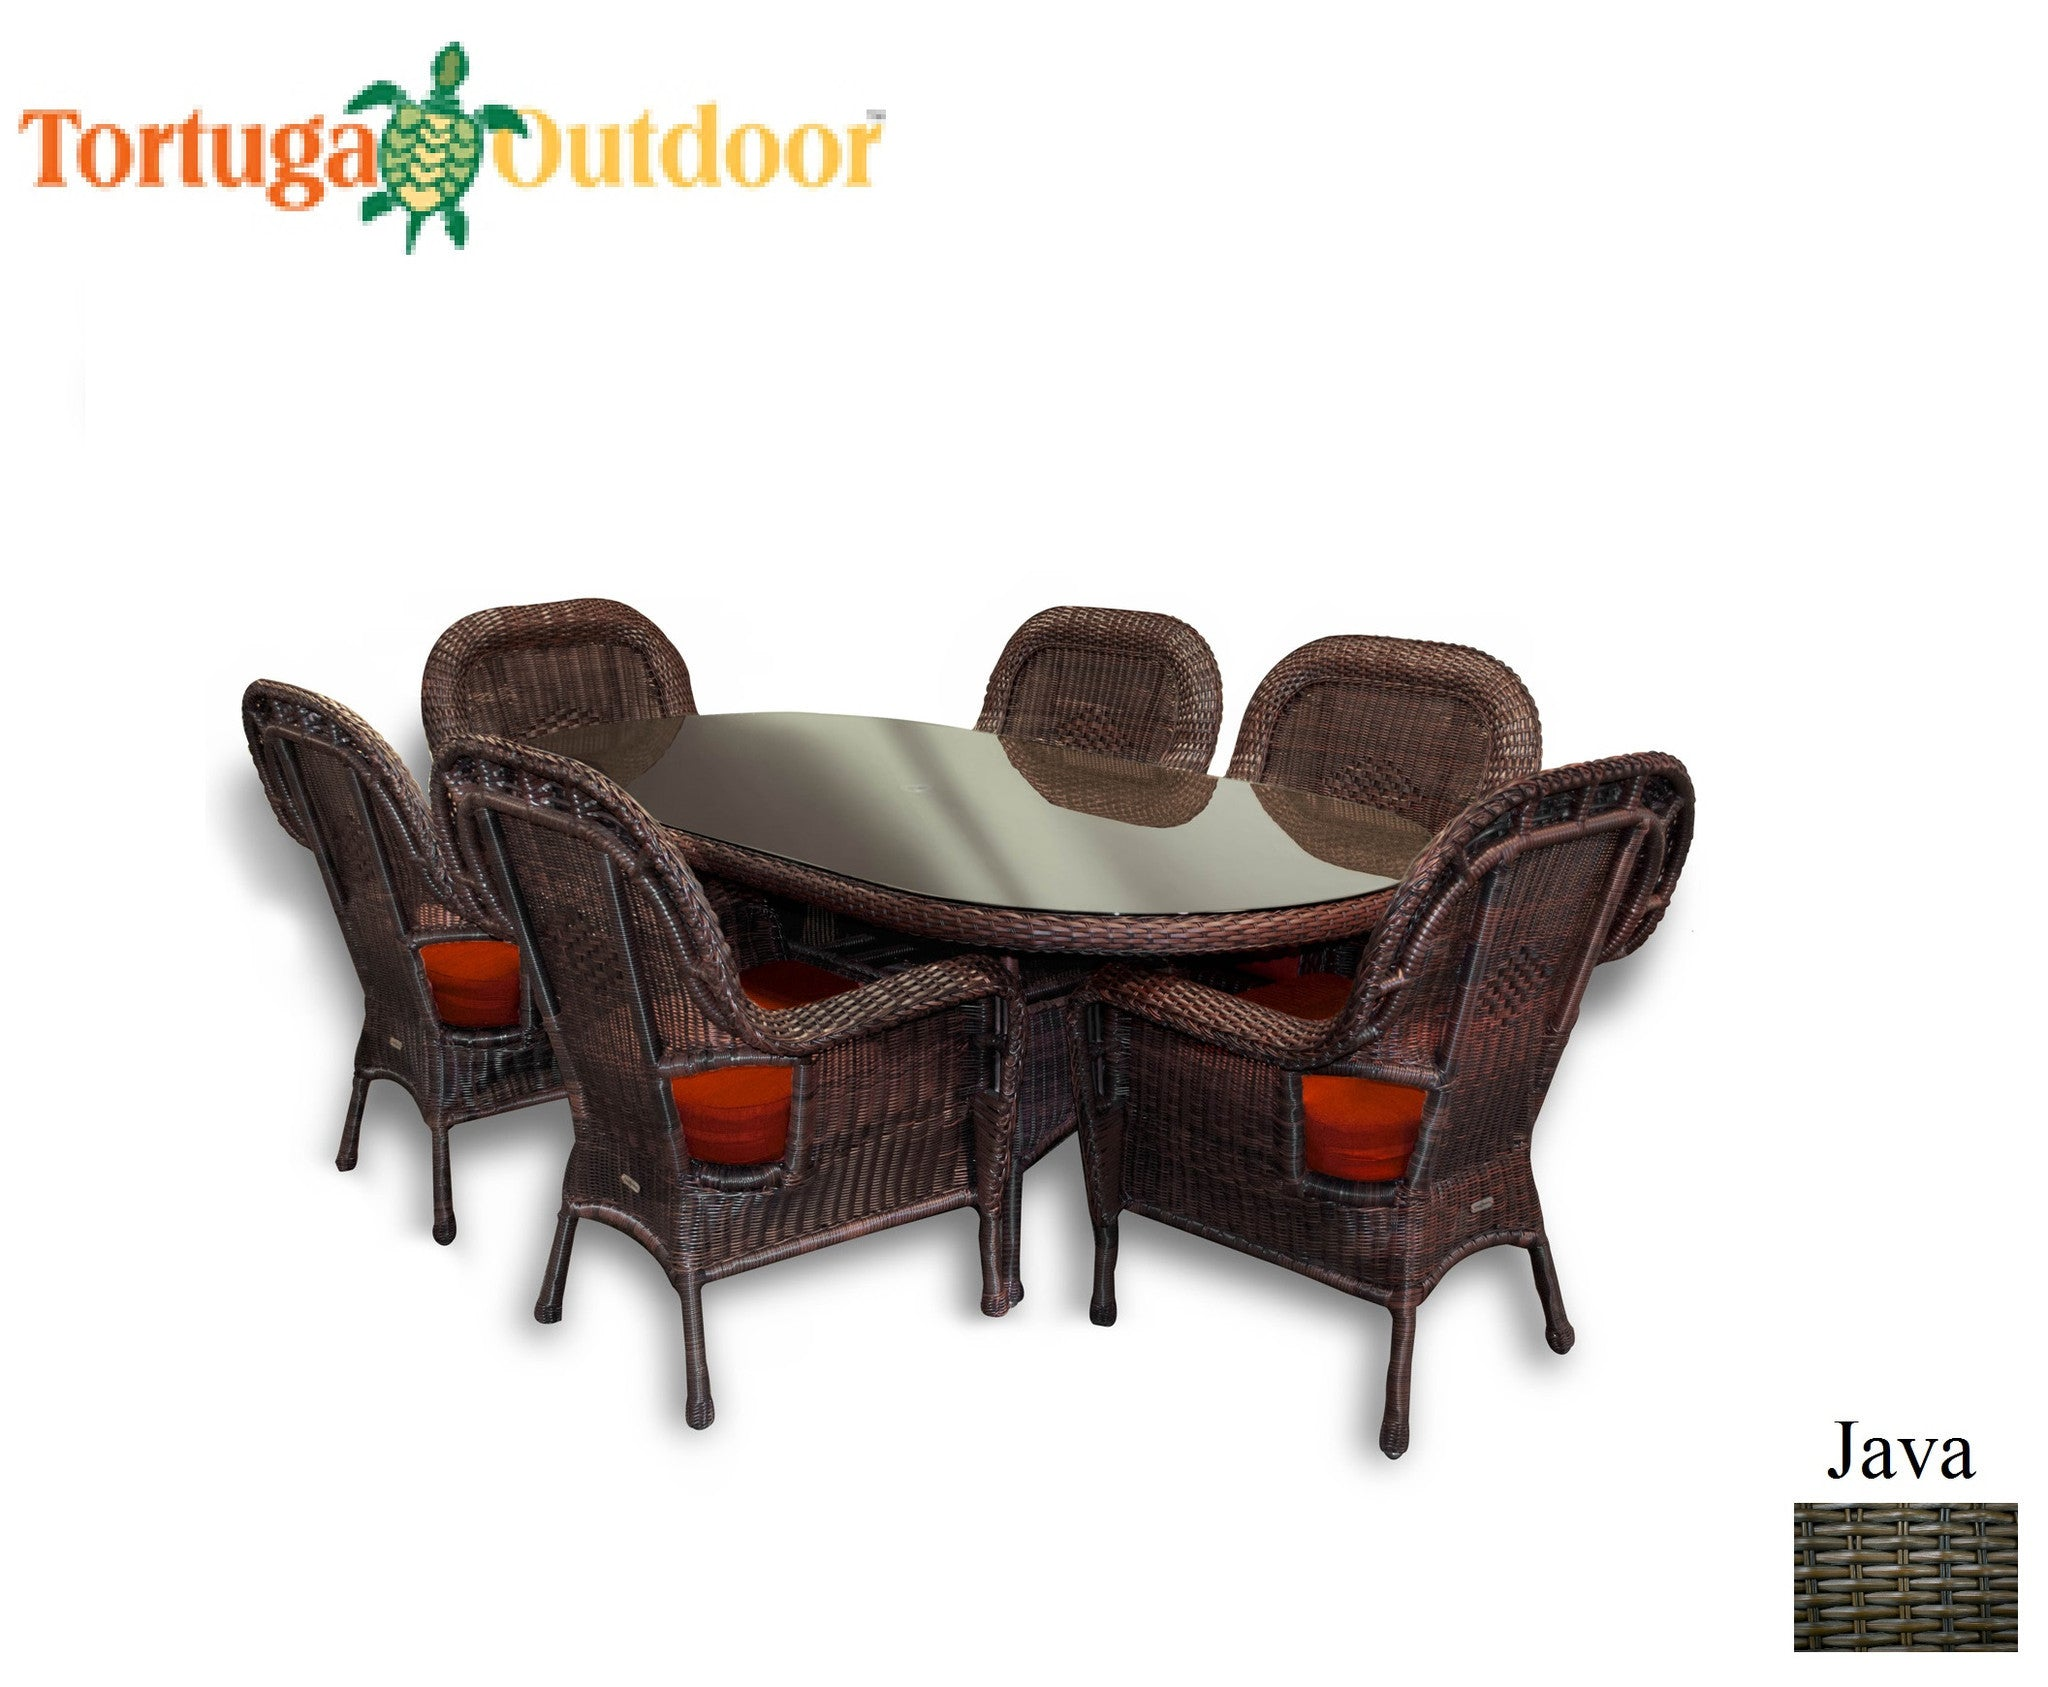 Outdoor Sets Home & Patio Living